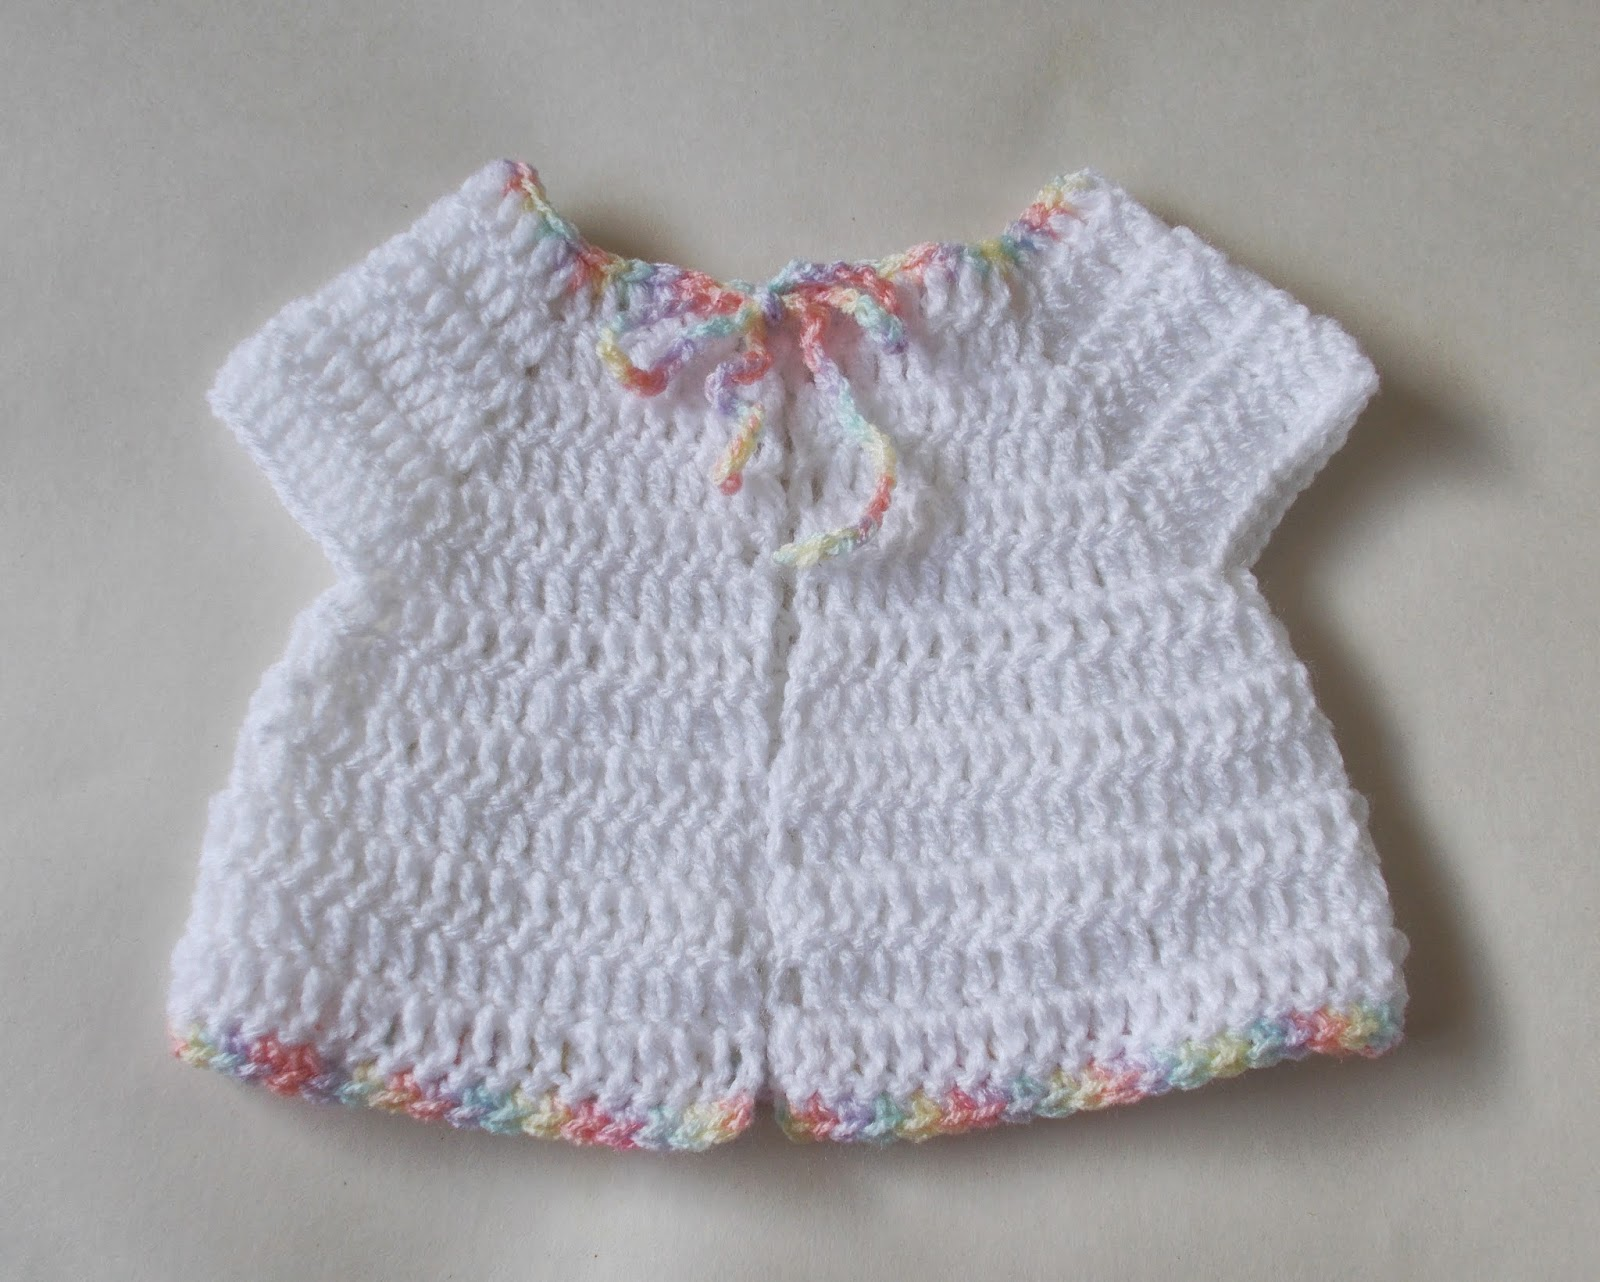 Crochet Patterns For Premature Babies : mariannas lazy daisy days: Premature Baby Crochet Baby Jacket